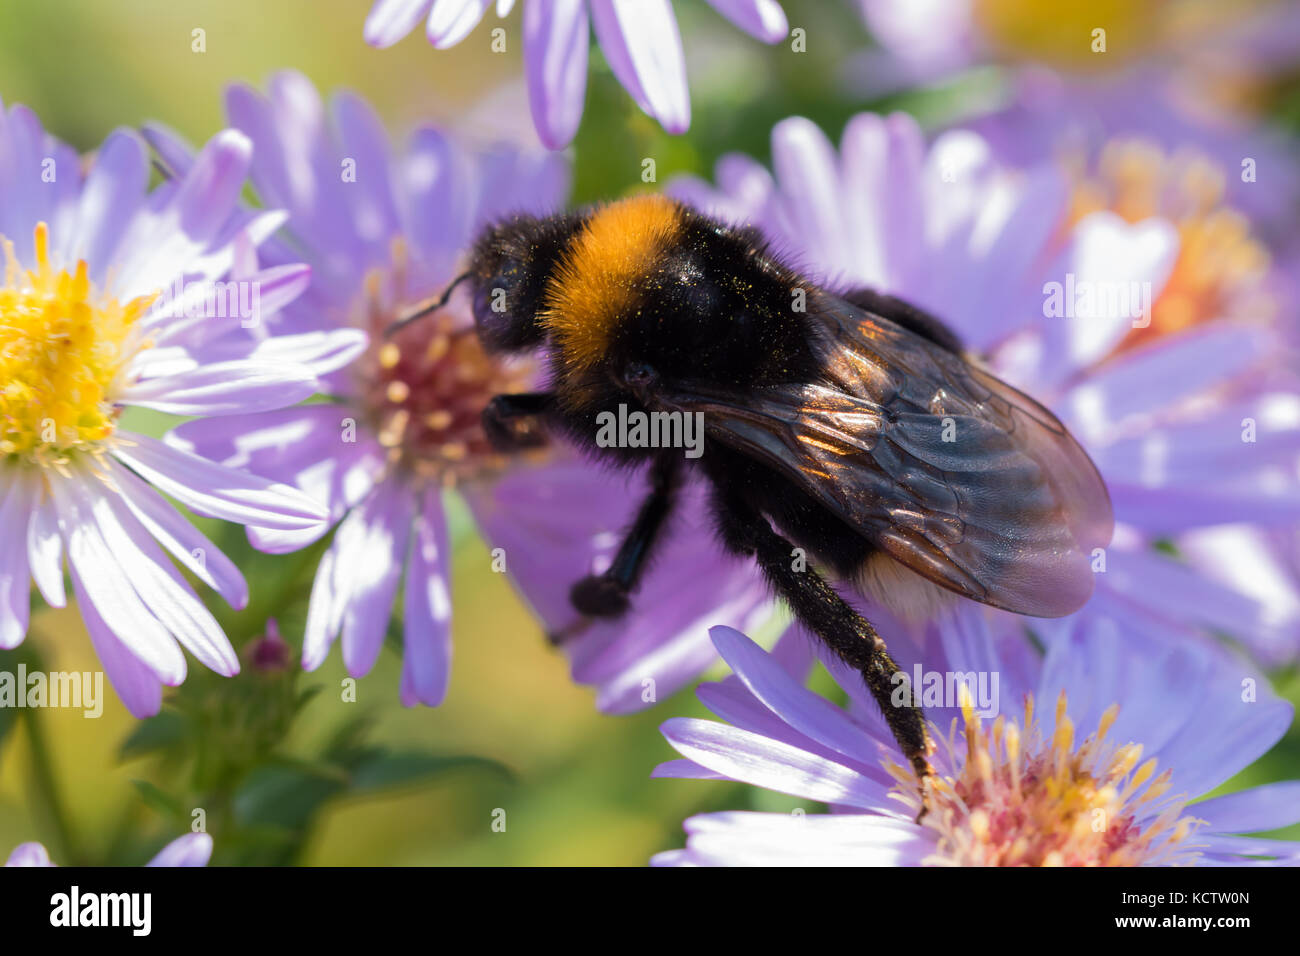 The bumblebee sitting on a flower (Aster amellus) and feeding on nectar.  Close-up with selective focus. - Stock Image